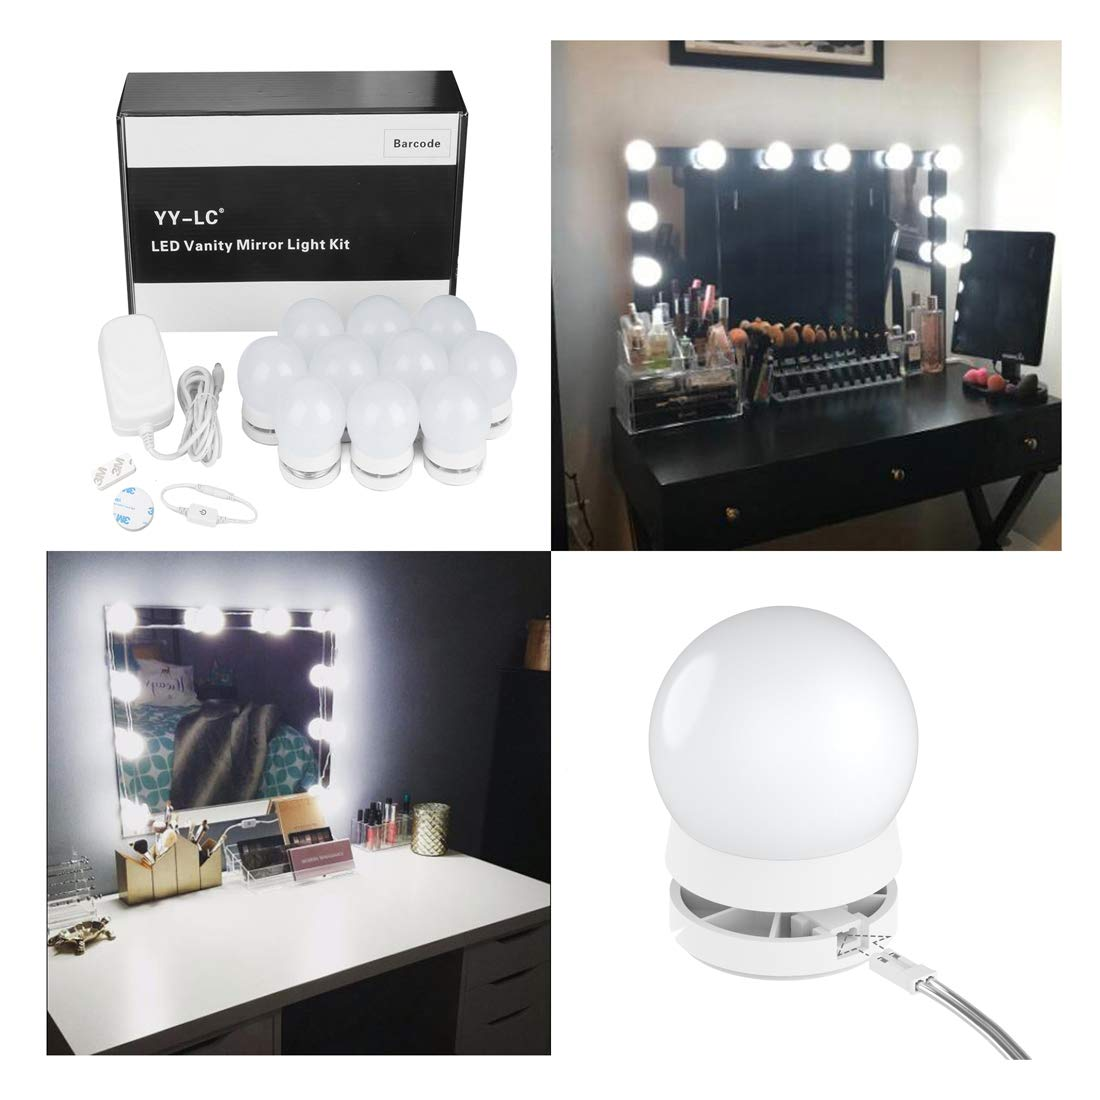 YY-LC LC178 Hollywood Style LED Vanity Mirror Light Bulbs Kit with Dimmer Switch,Power Supply,Can Hide Wires and Replaceable Bulbs,for Makeup Vanity Table Set,10 Light,Mirror Not Included